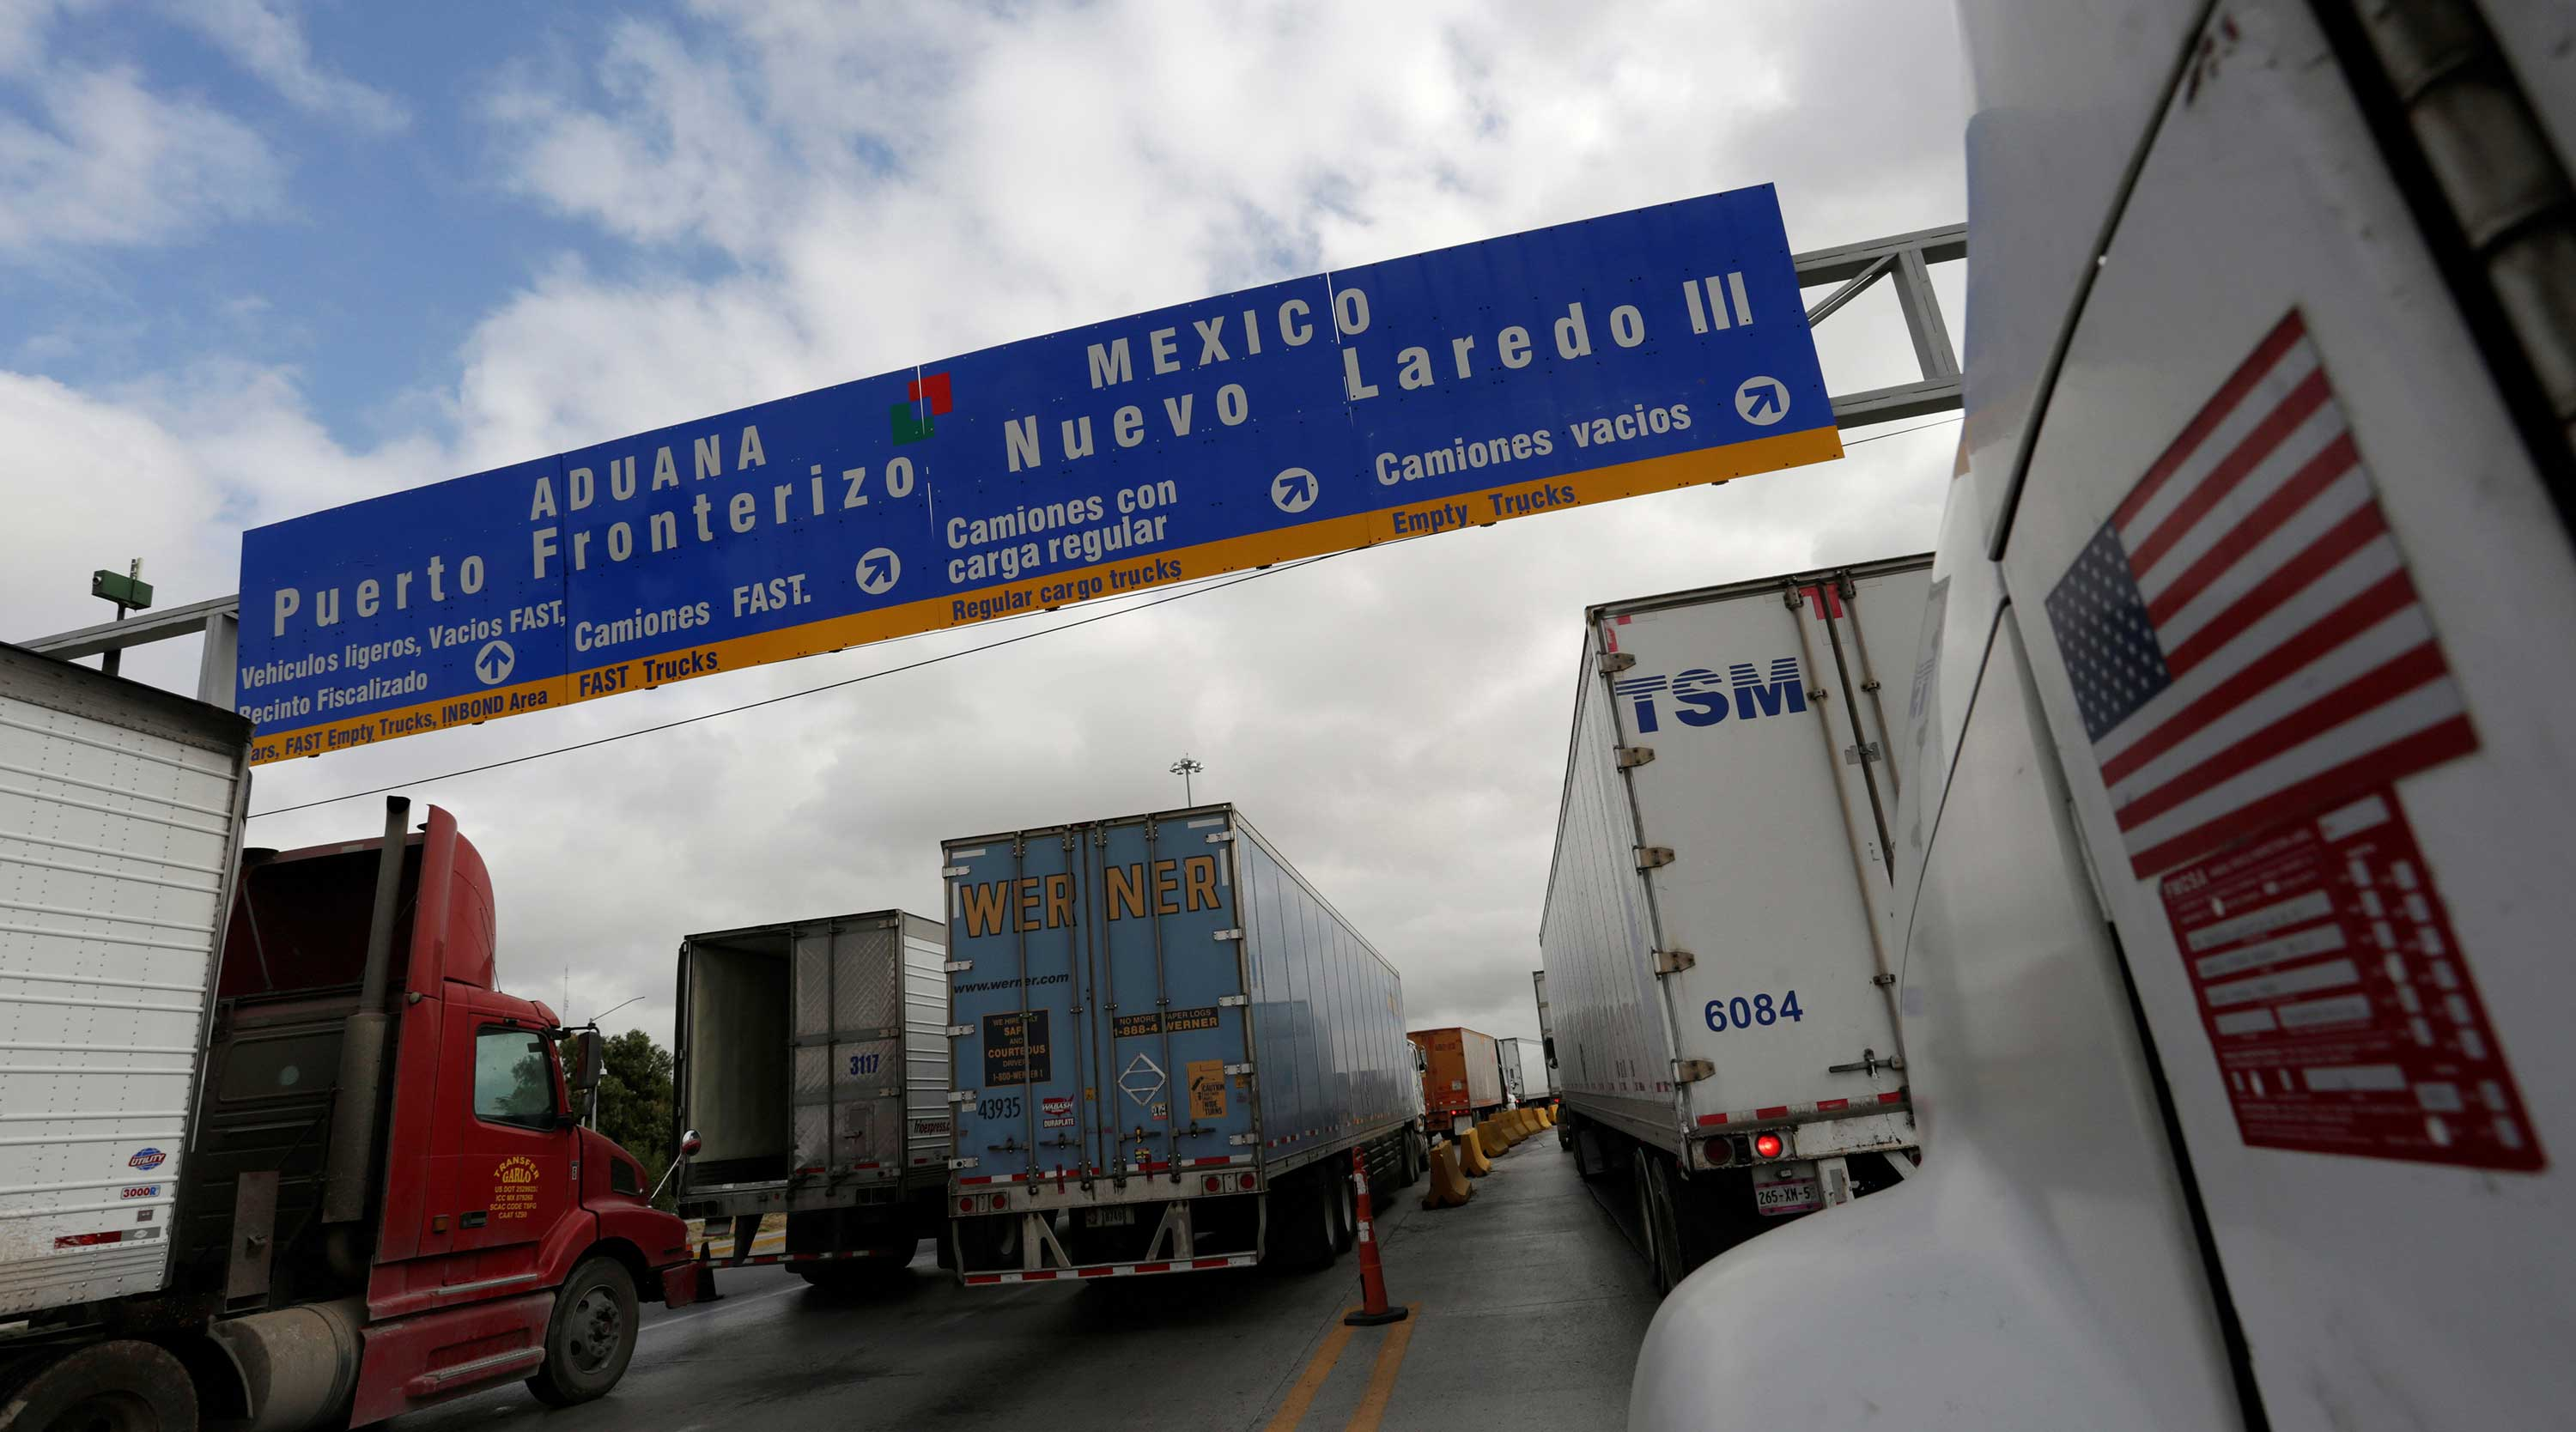 Trump still hangs tariff threat over Mexico despite deal